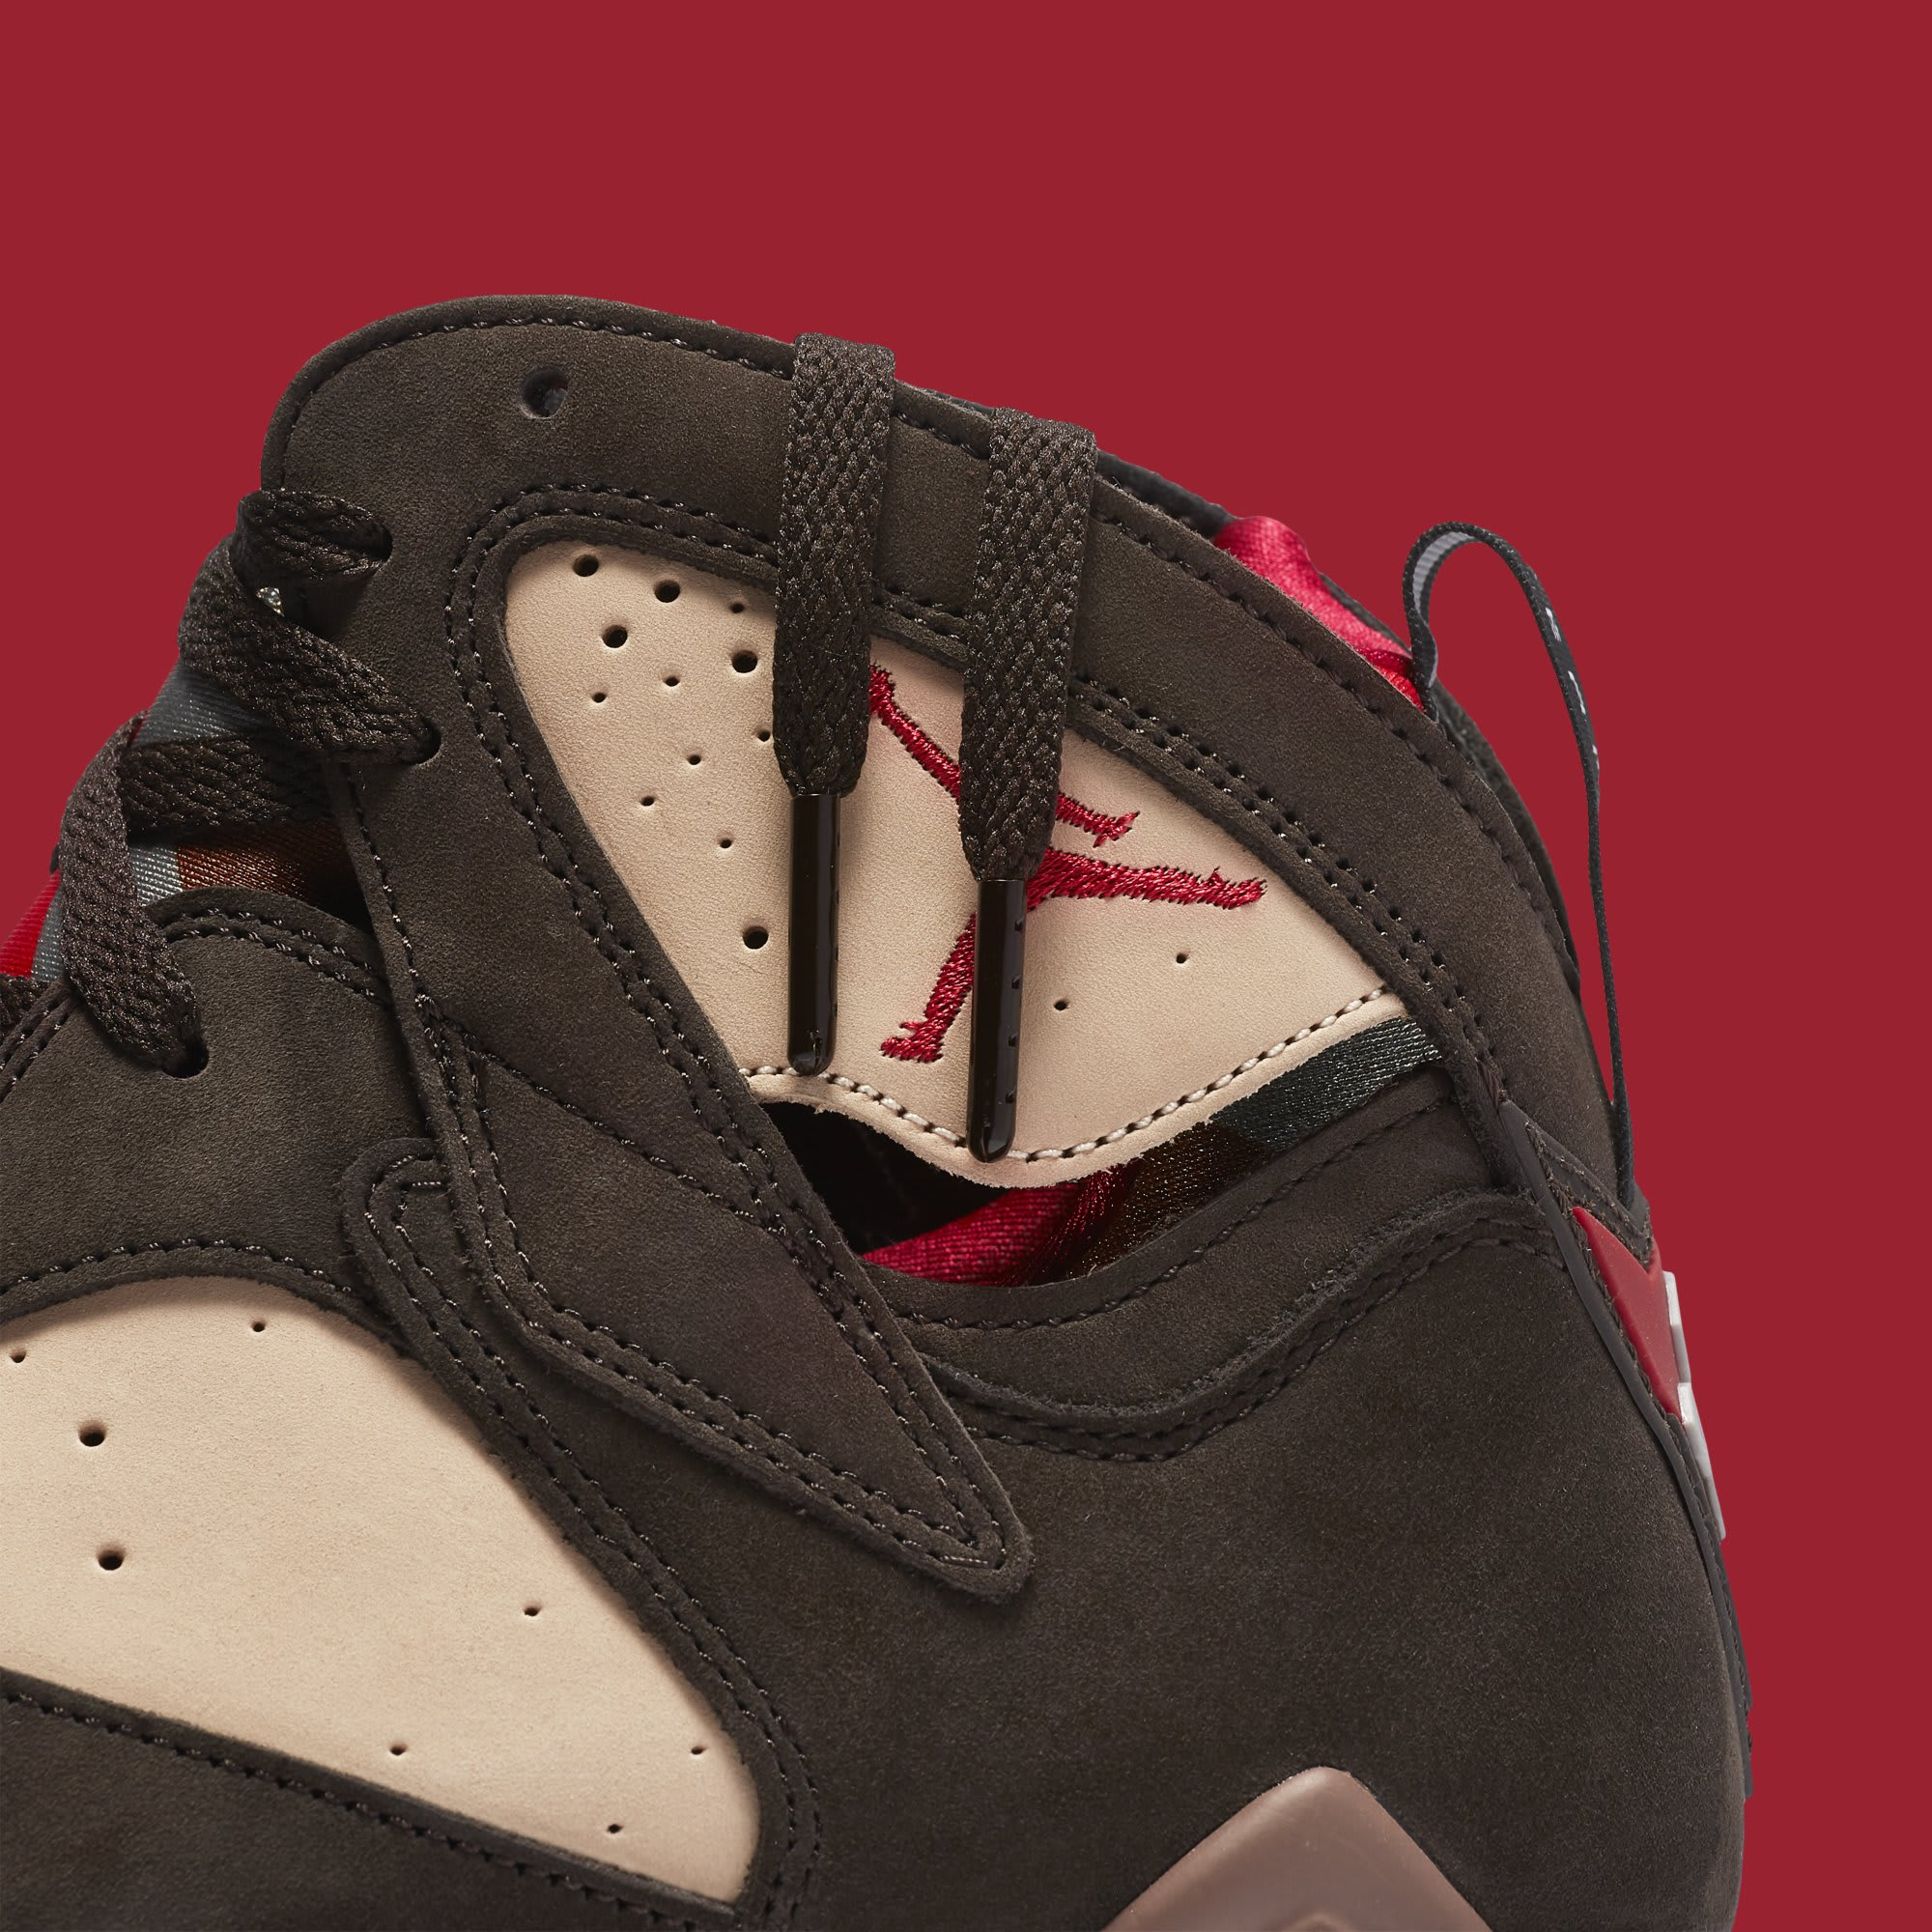 Patta x Air Jordan 7 AT3375-200 (Detail)